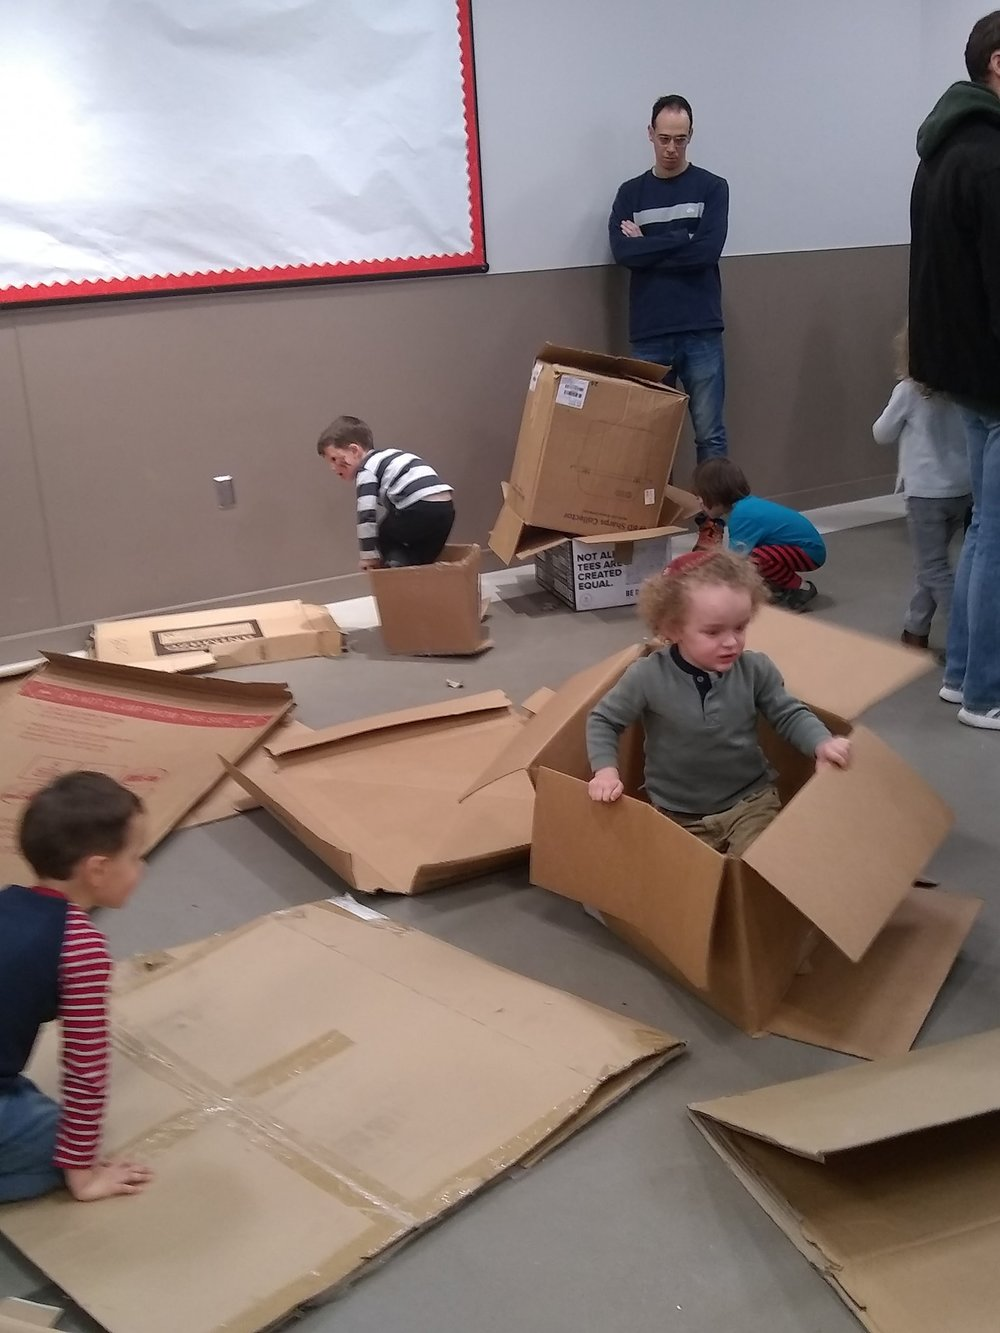 Building with boxes.jpg